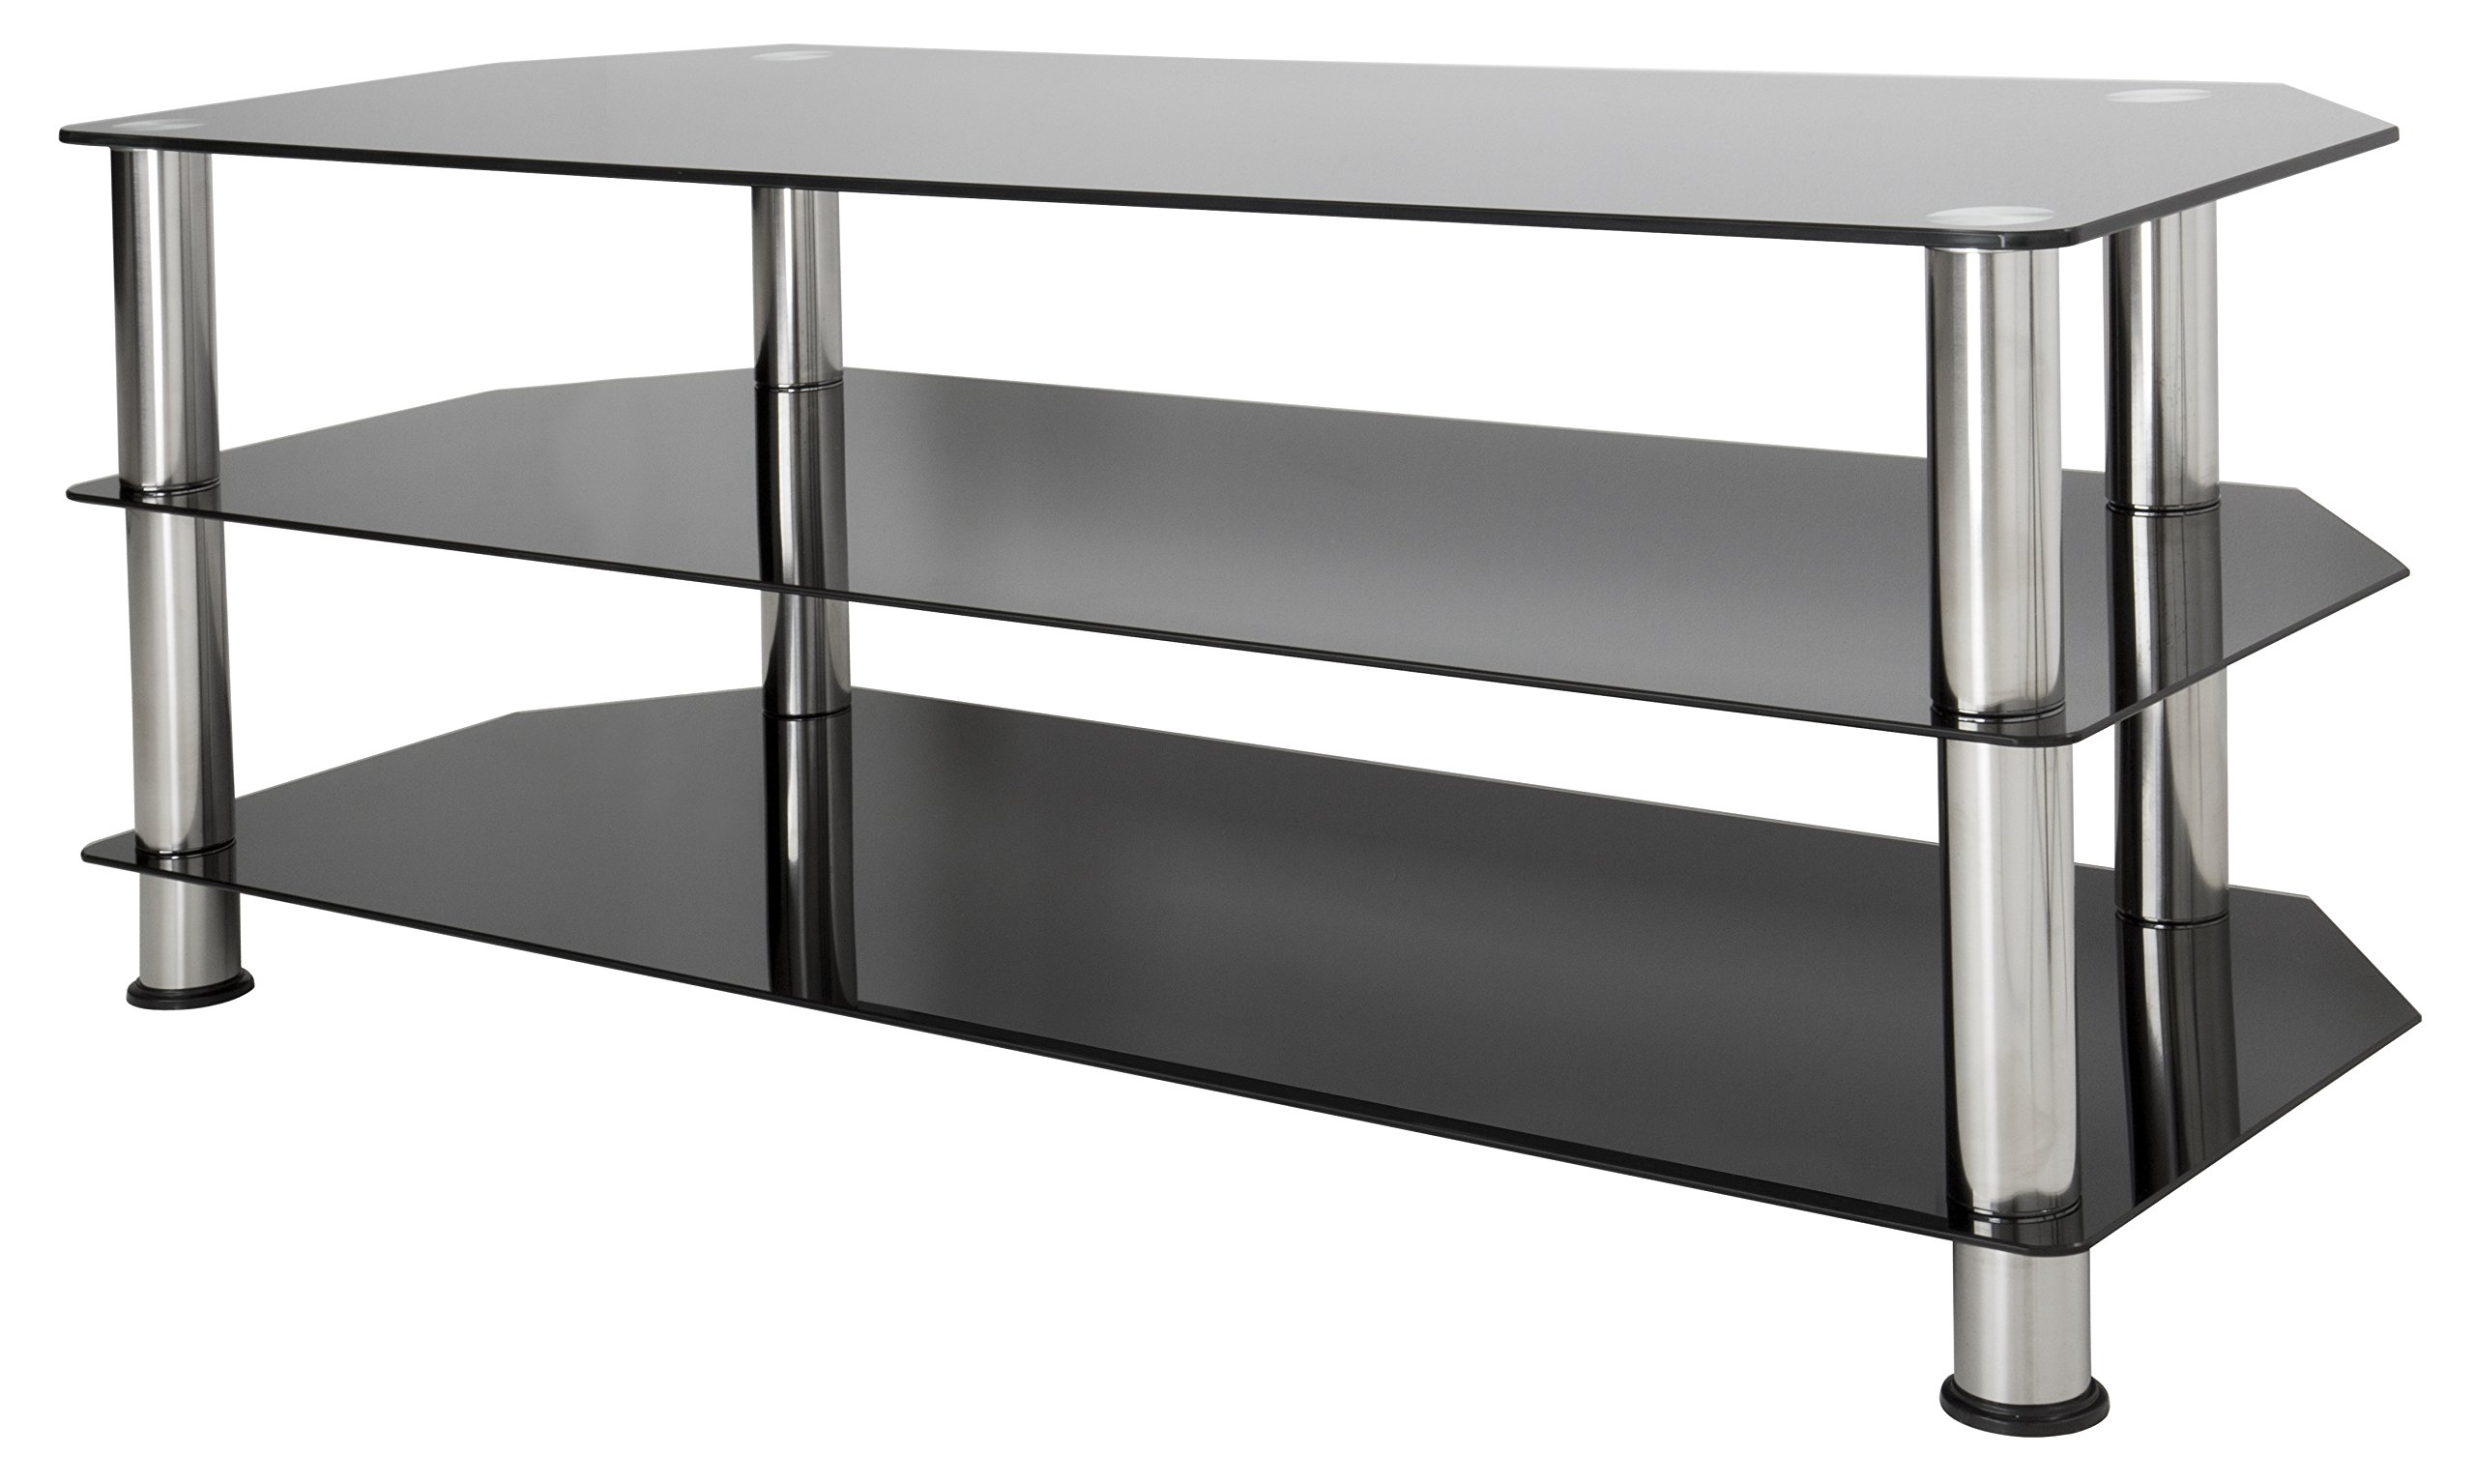 avf sdc1140 a tv stand for up to 55 inch tvs black glass chrome legs ebay. Black Bedroom Furniture Sets. Home Design Ideas